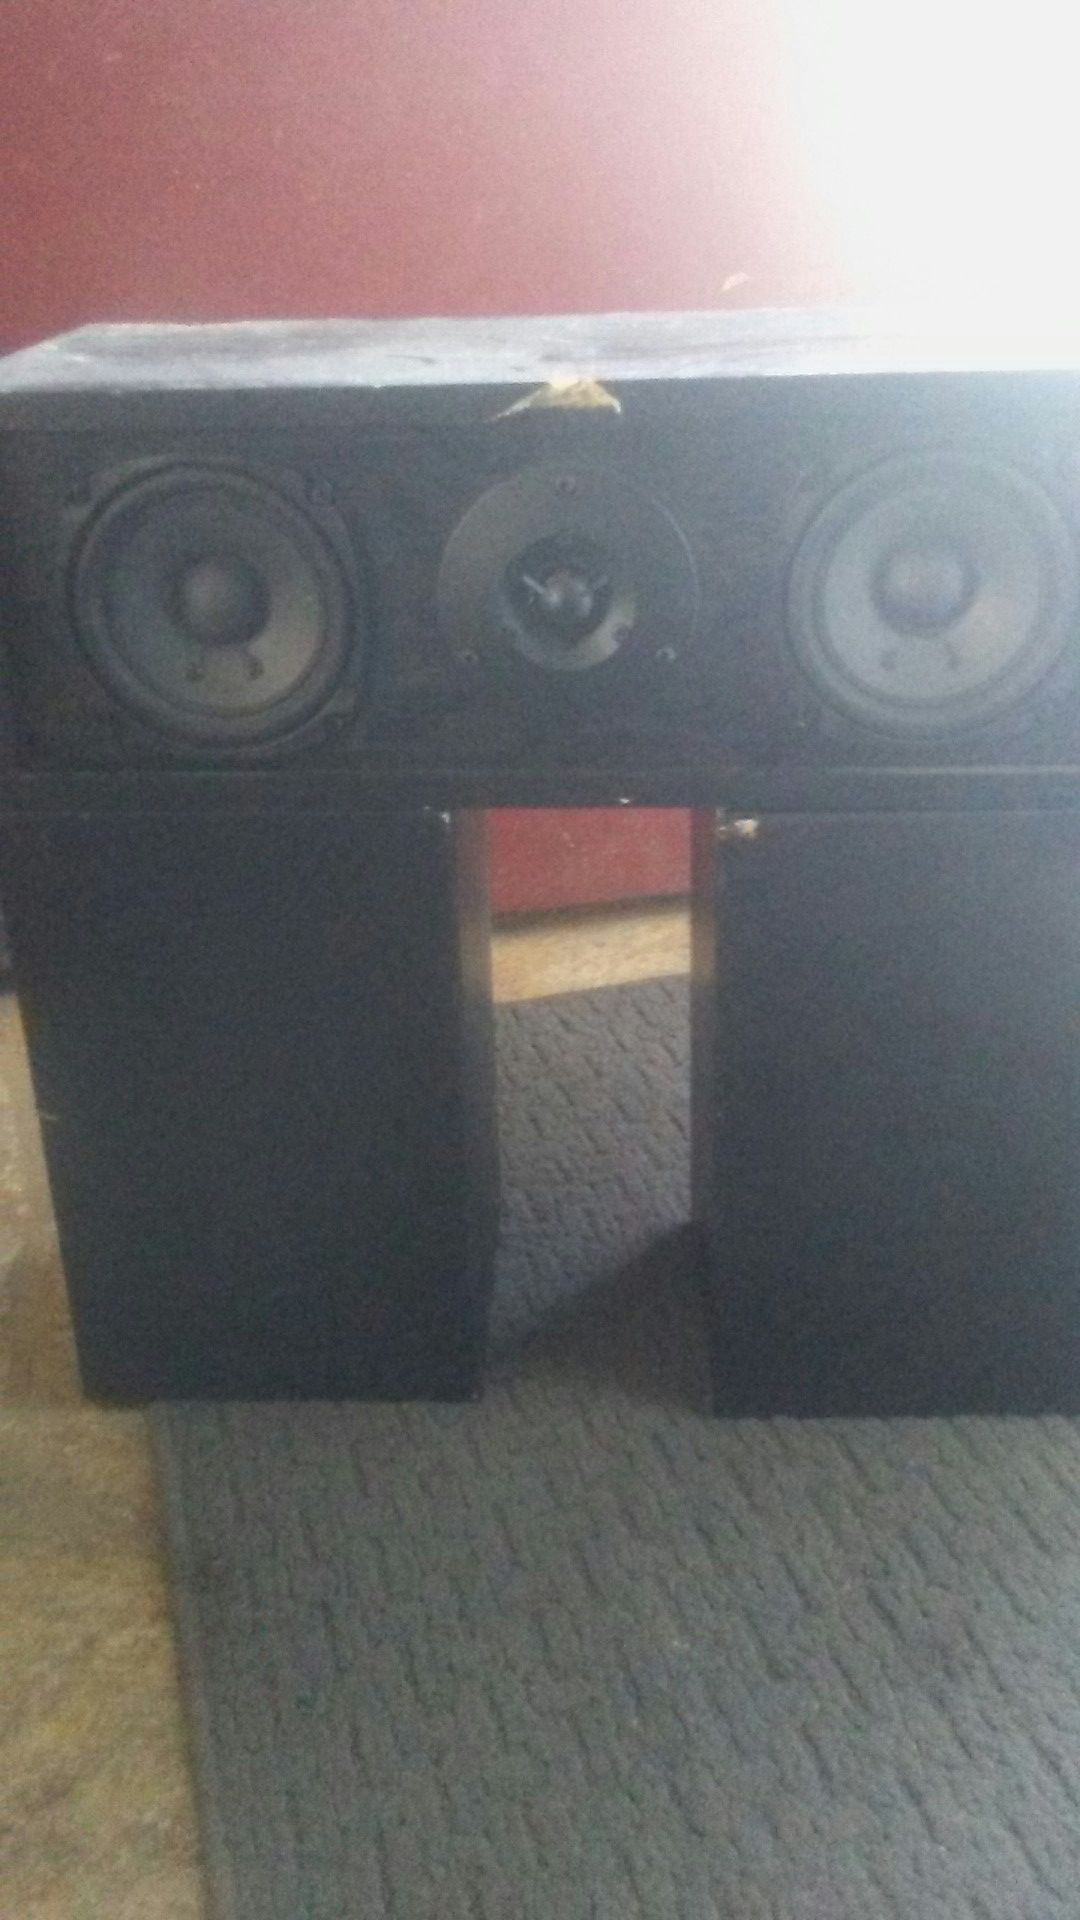 Onkyo surround speakers fusion aV s19 center and s09left and s19 right